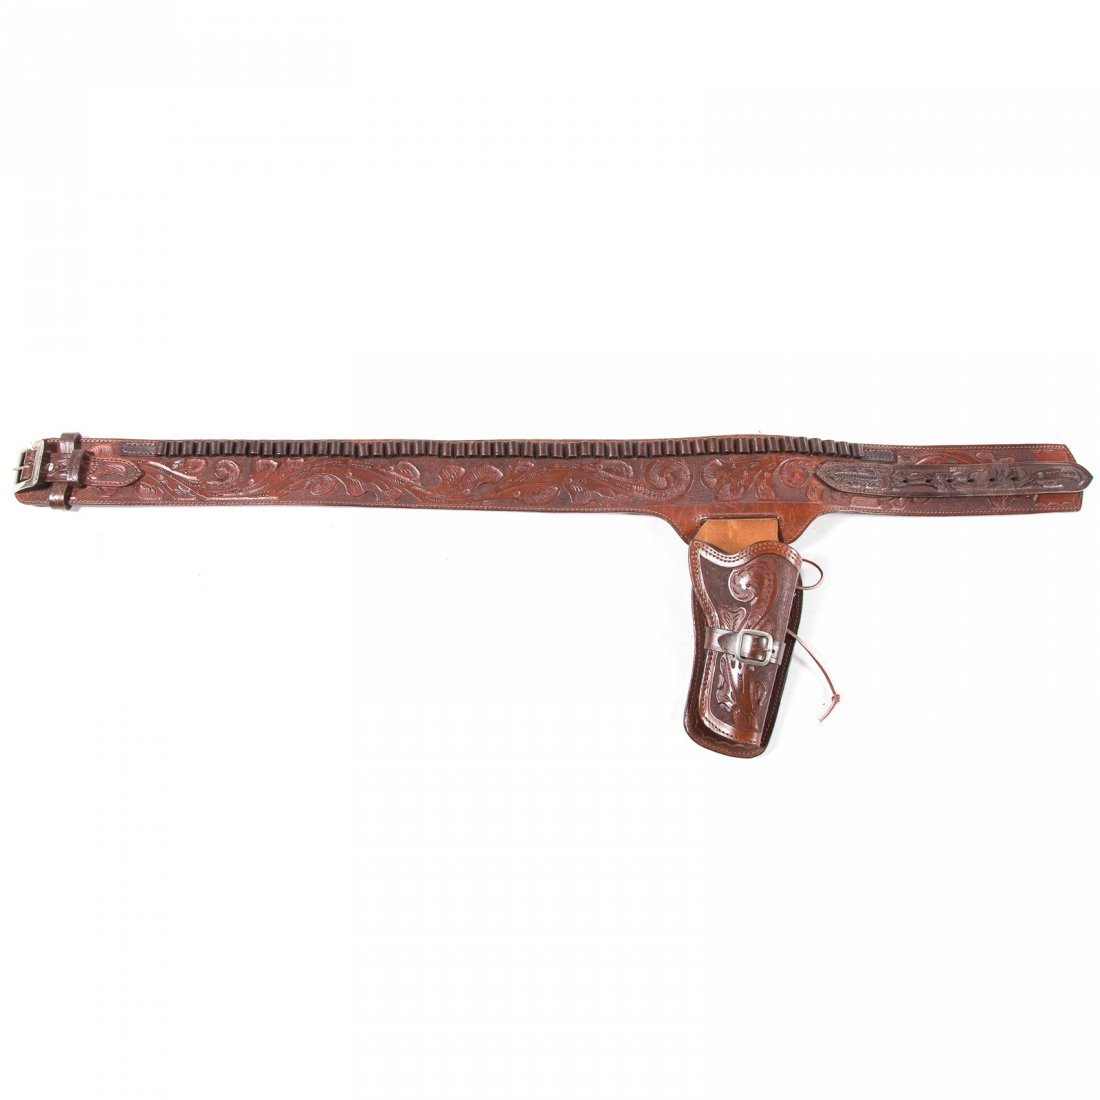 Cowboy tooled leather gun rig, single holster